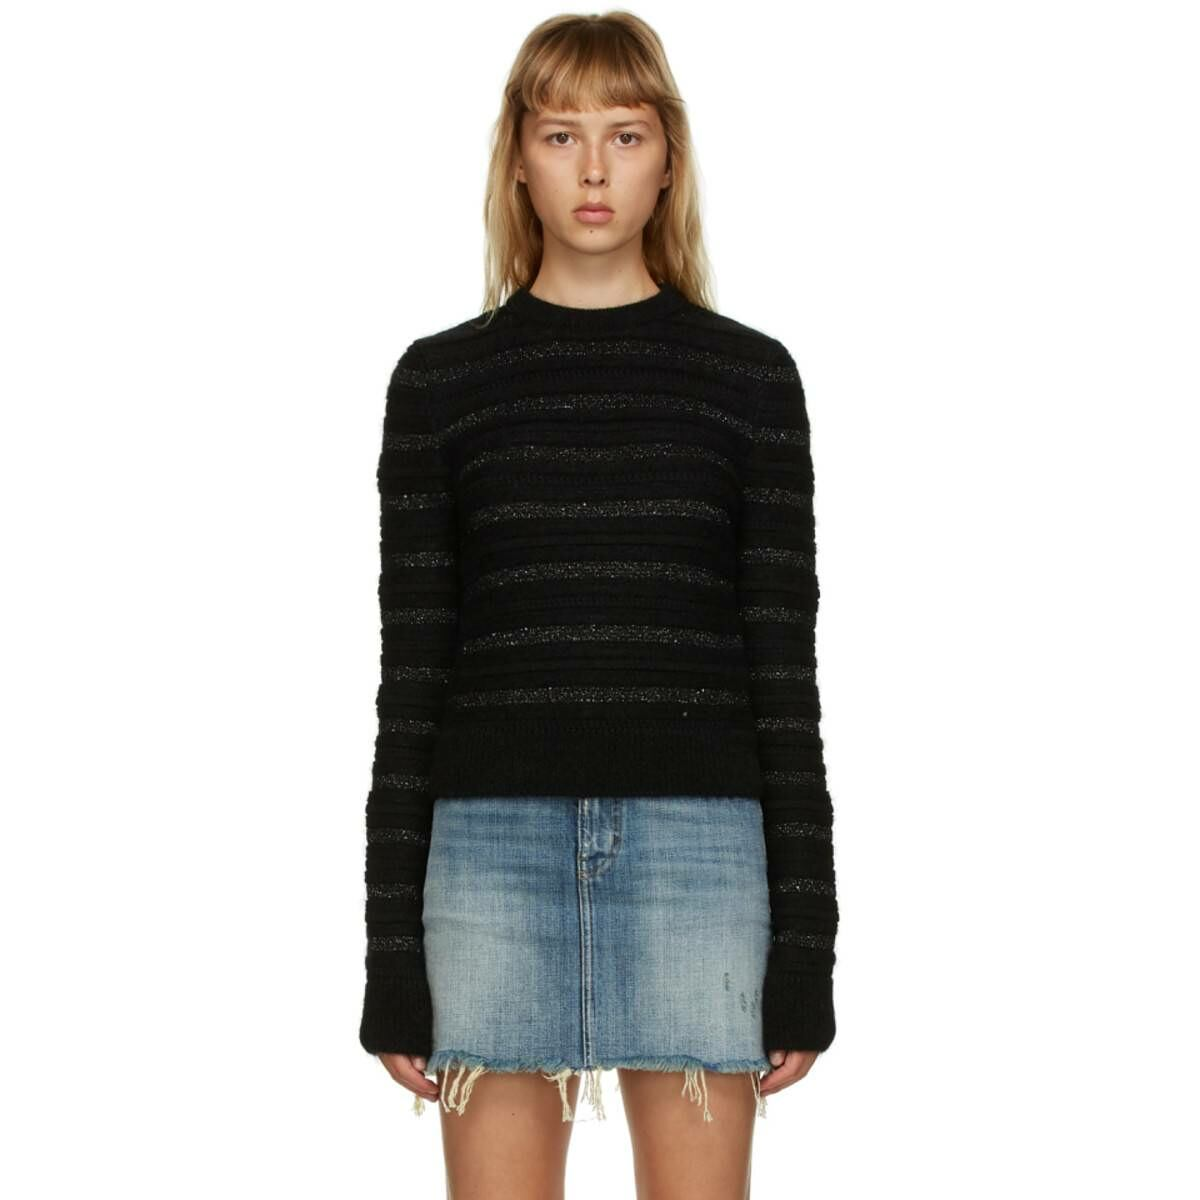 Saint Laurent Black Striped Sequin Crewneck Ssense USA WOMEN Women FASHION Womens KNITWEAR